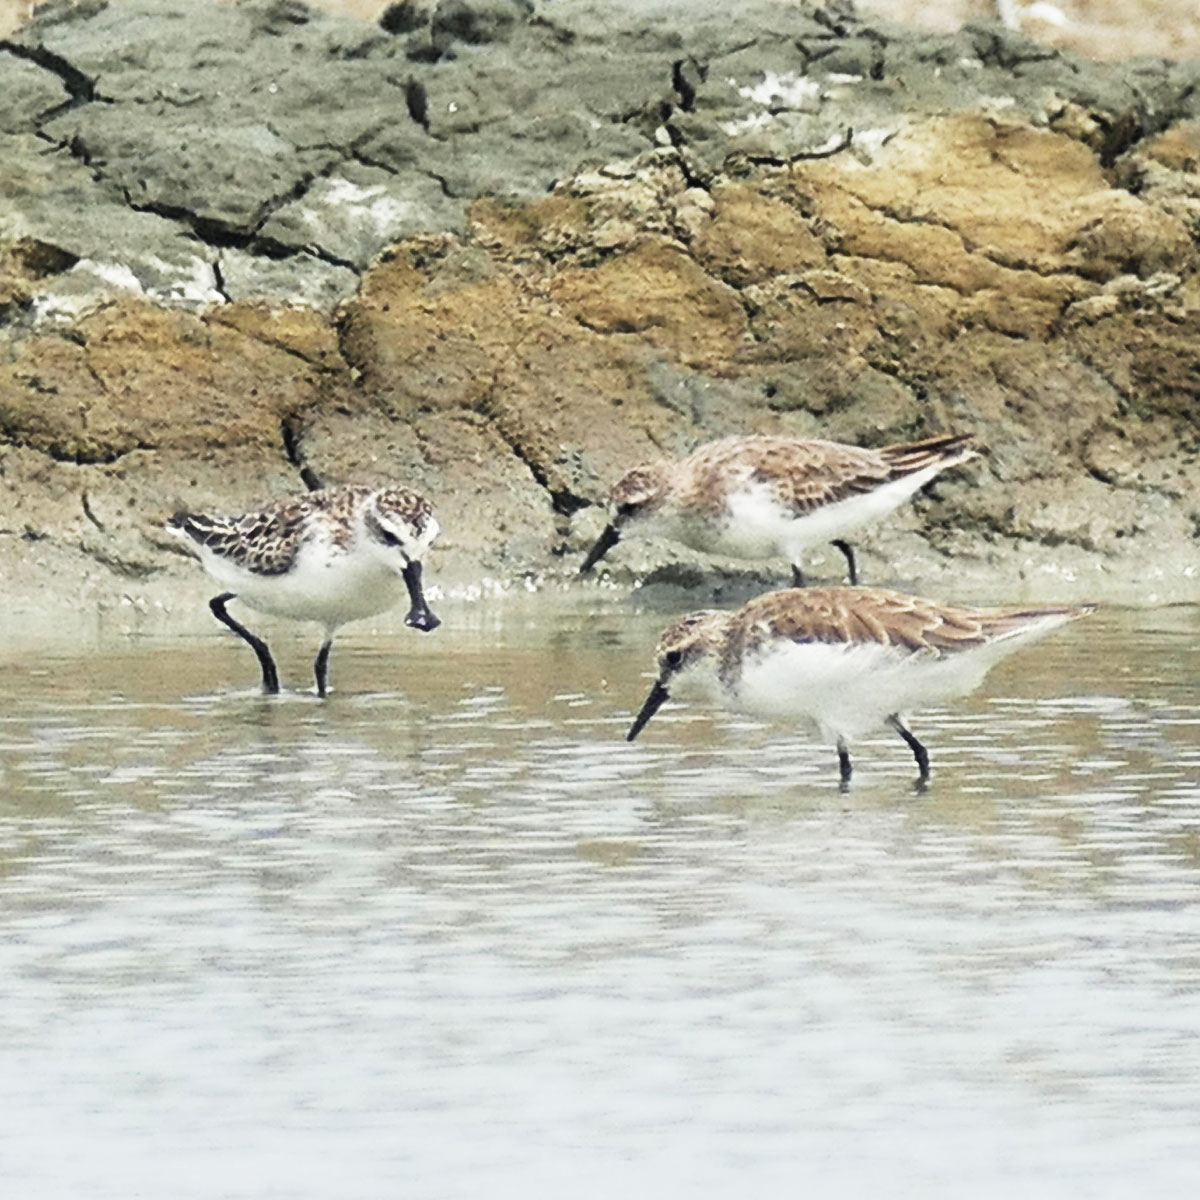 A Spoon-billed Sandpiper (left) forages with two Red-necked Stints at Pak Thale. Noah Strycker